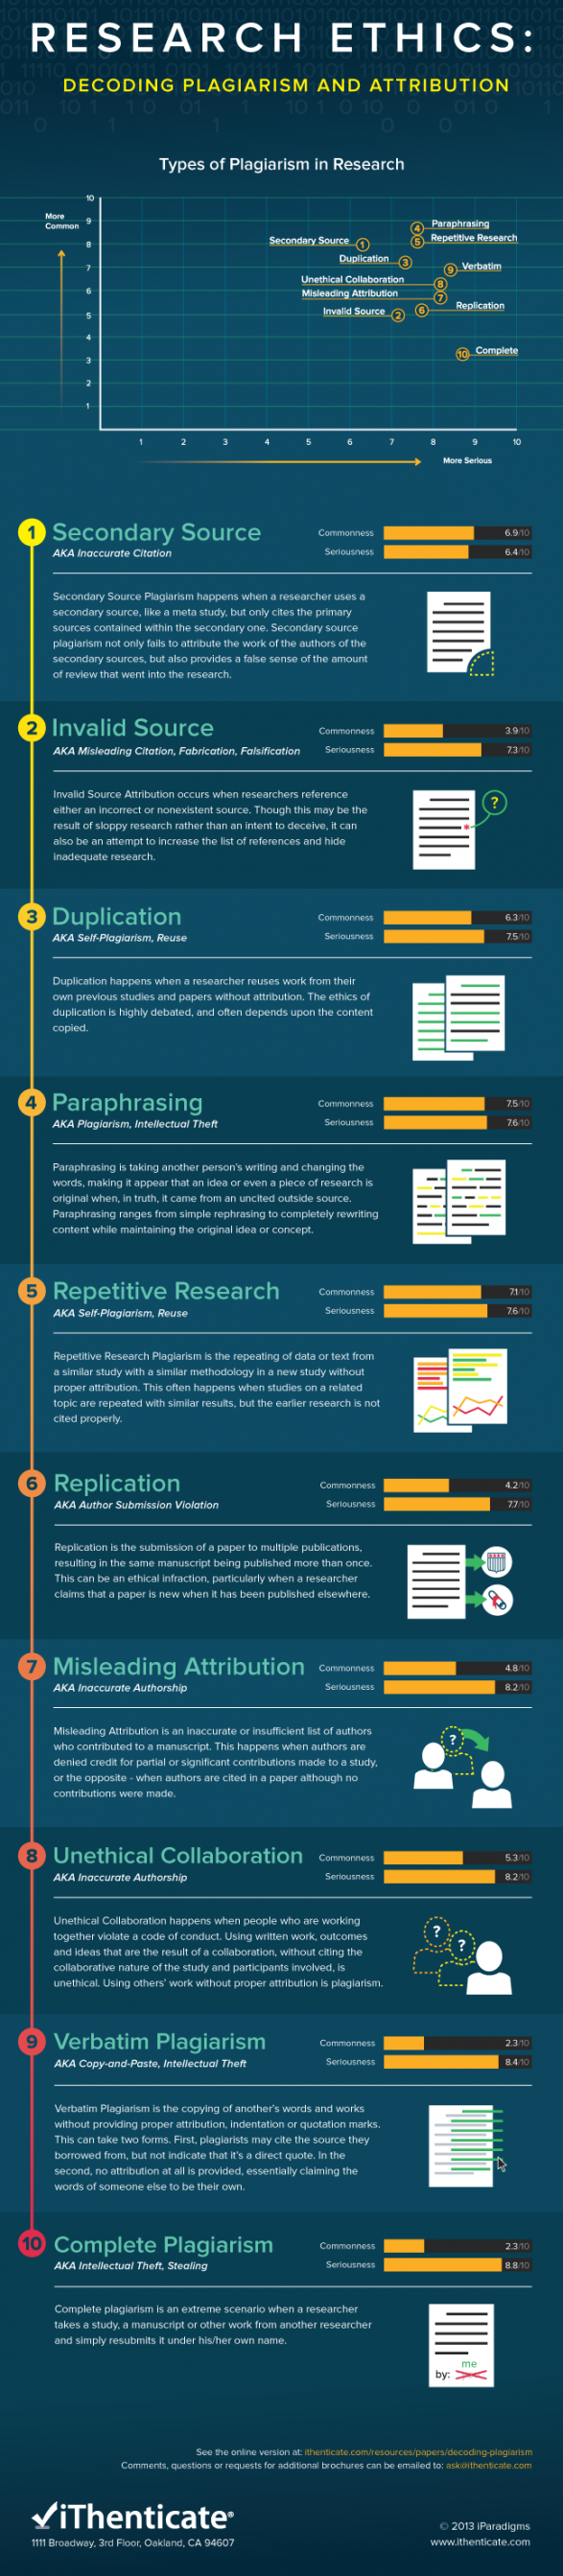 Types of Plagiarism in Research